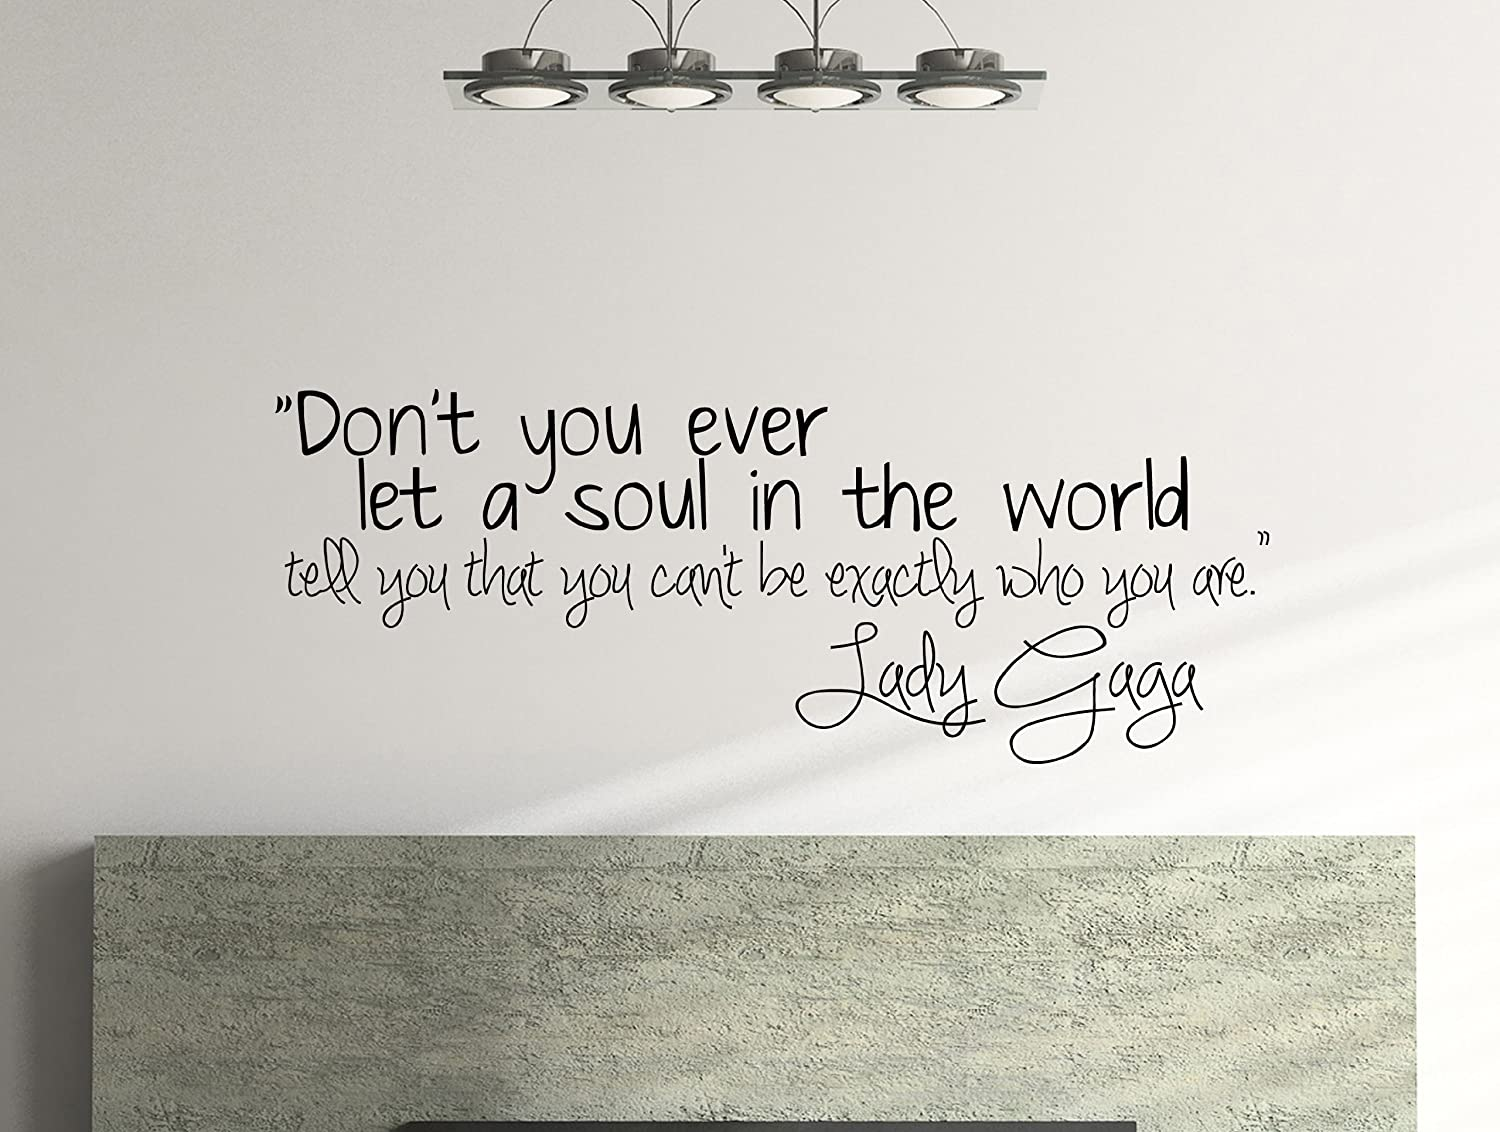 Amazoncom Lady Gaga Inspirational Wall Decal Quote Dont You - Wall decals motivational quotes